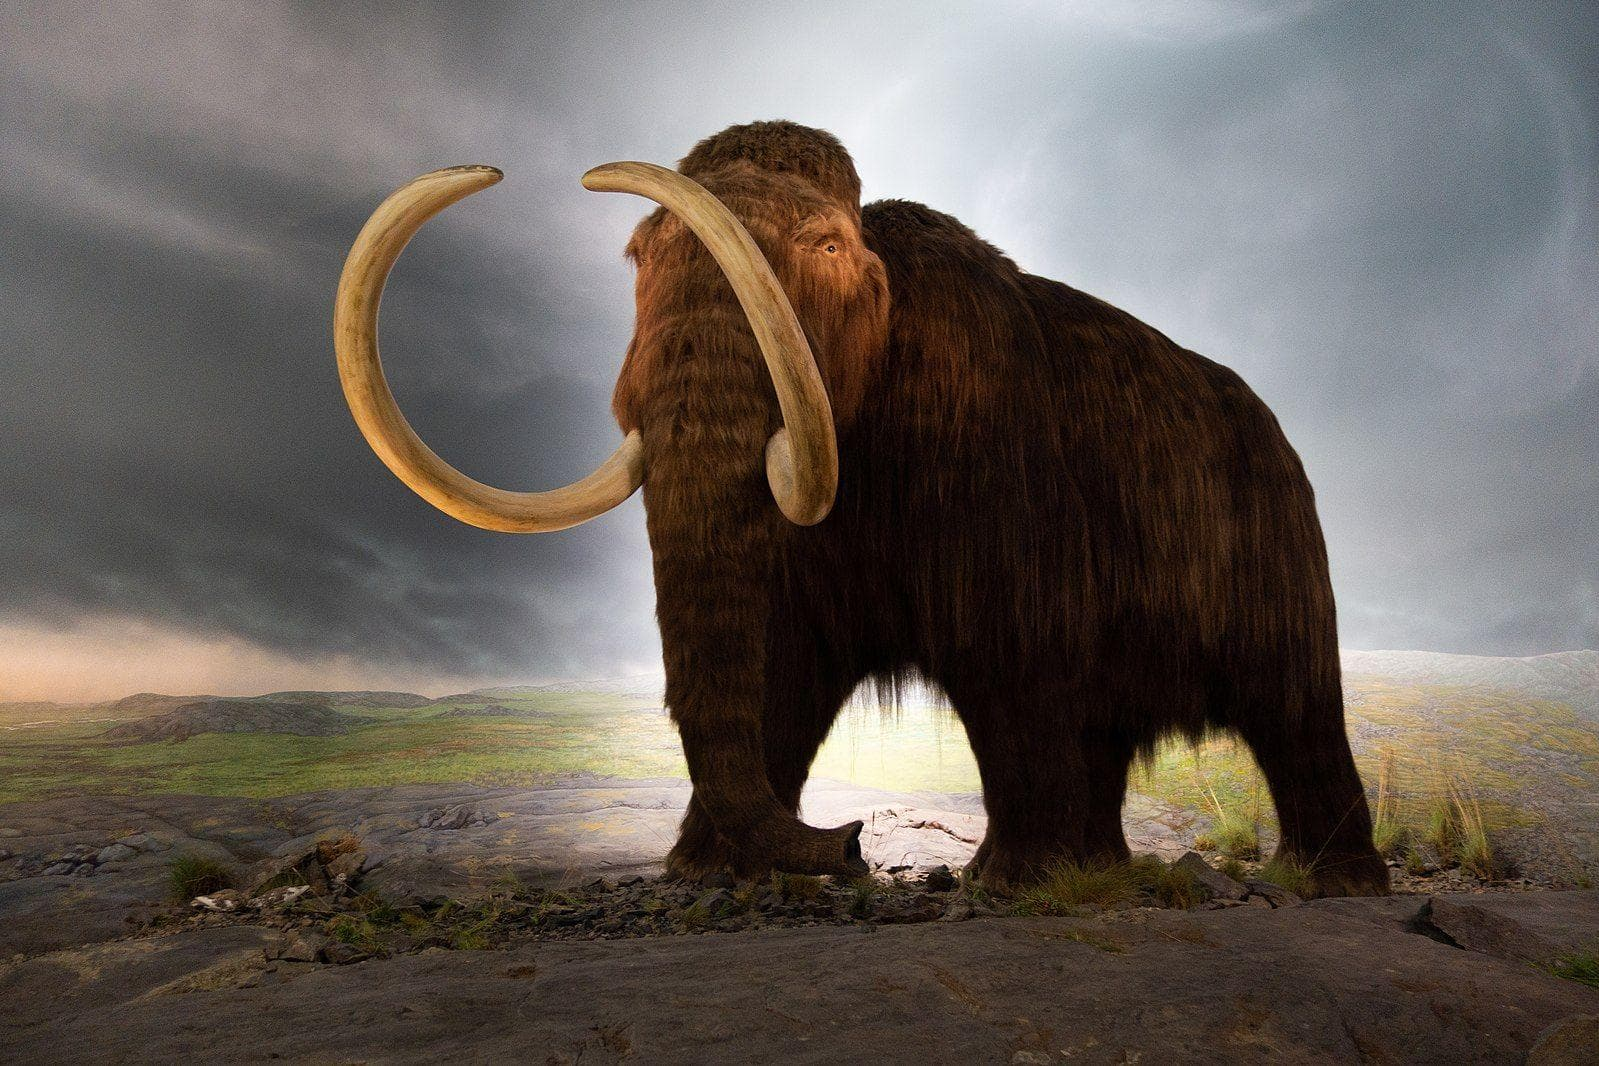 Random Facts About Woolly Mammoths That Might Explain Why They Became Extinct